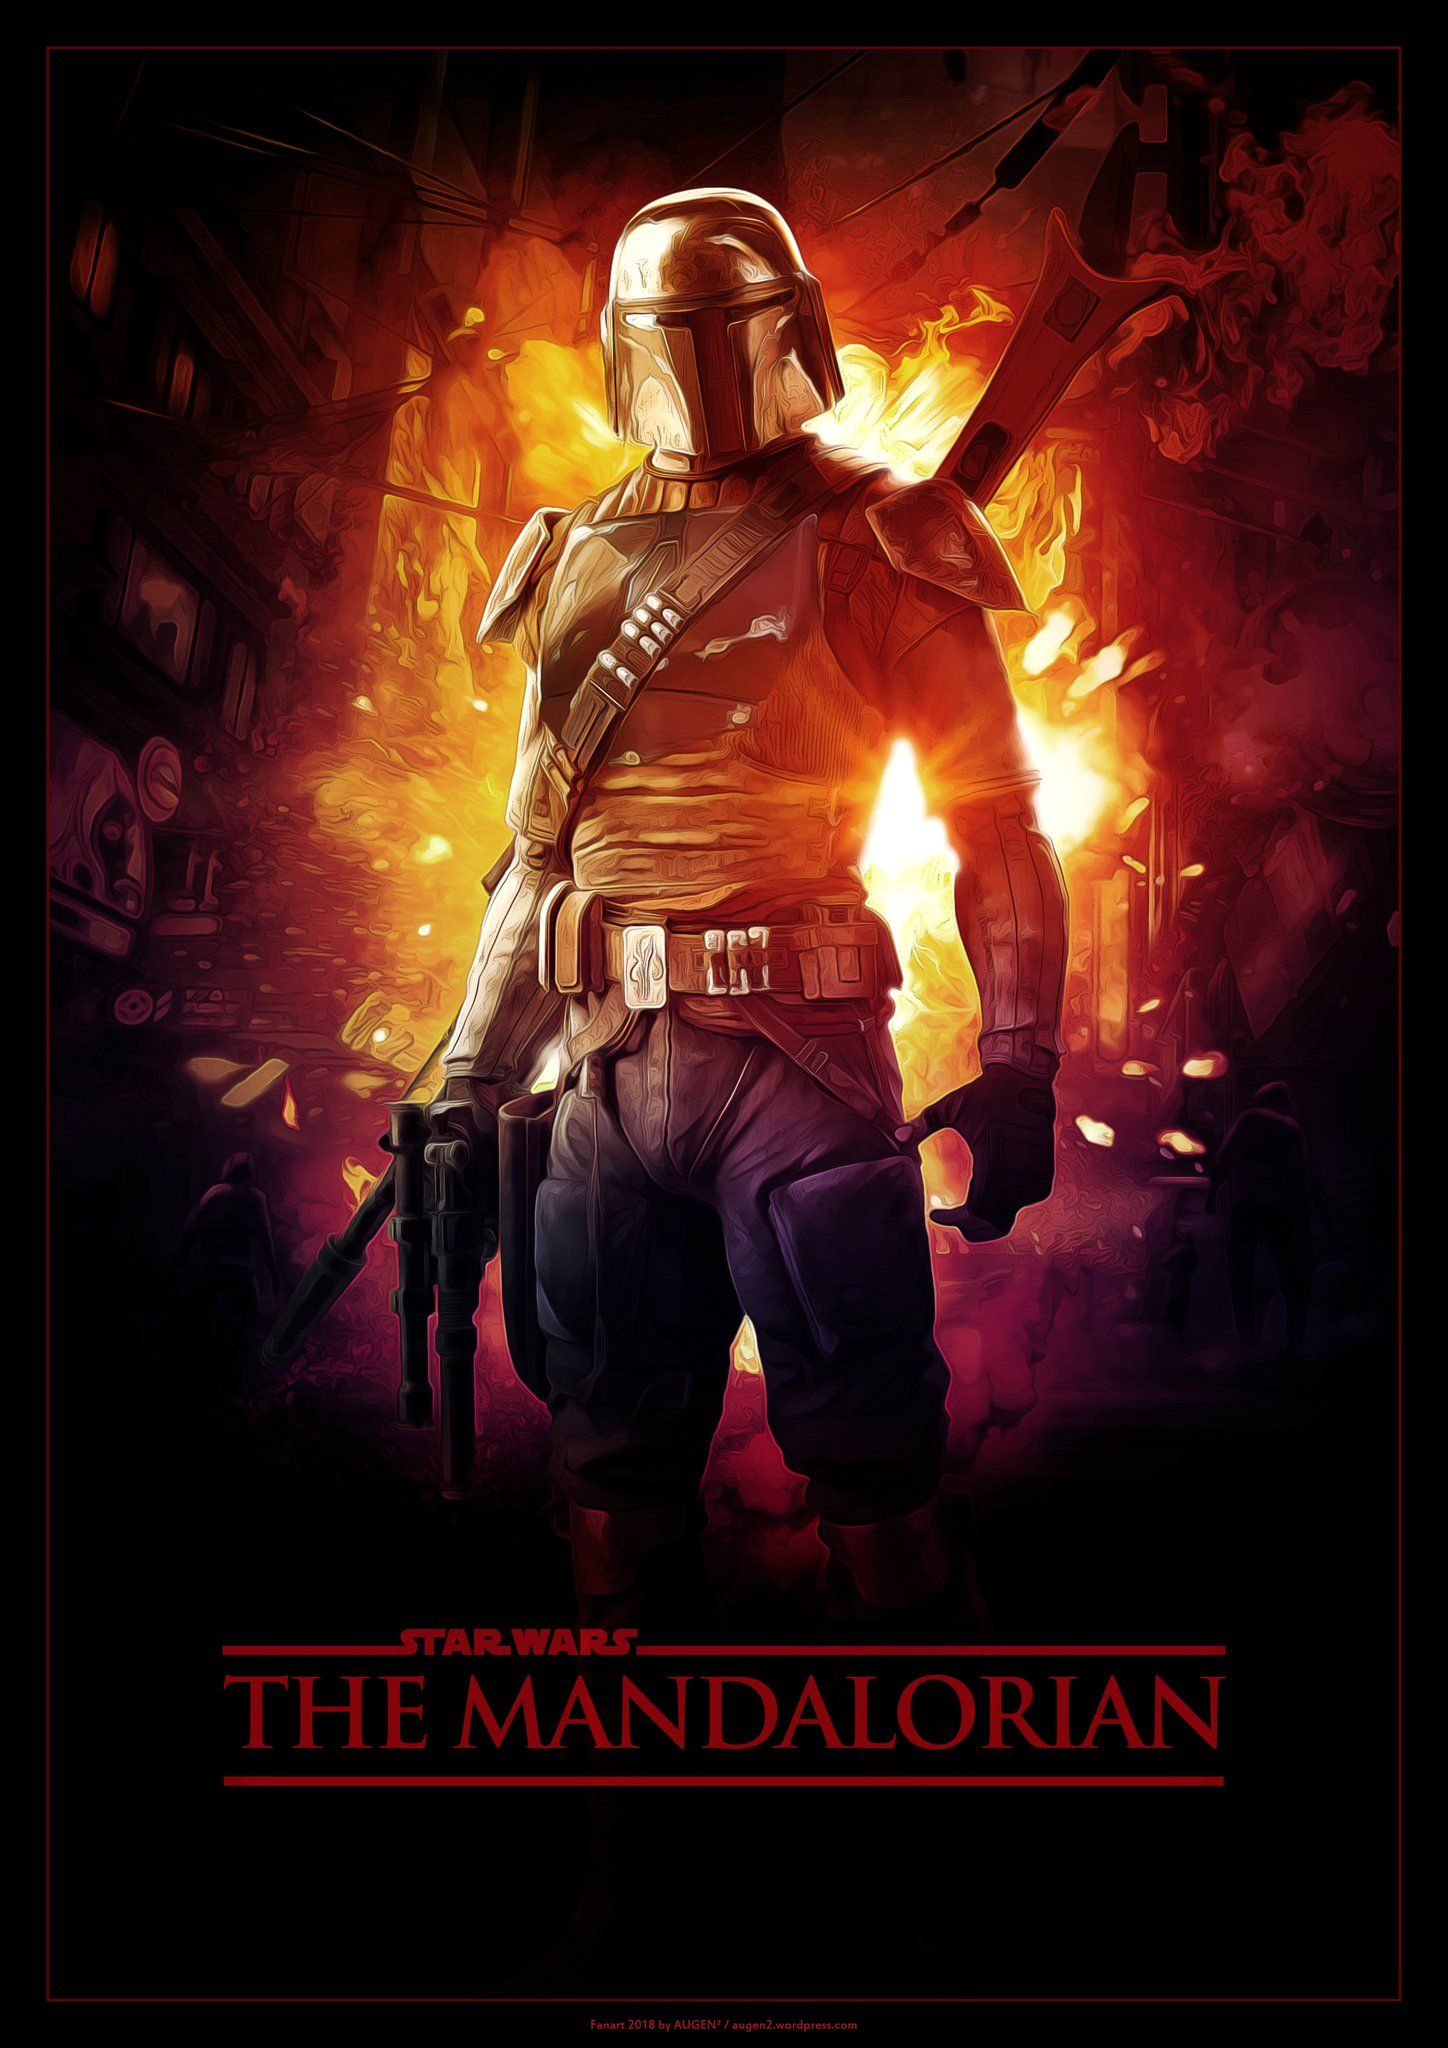 The Mandalorian starwars Art by